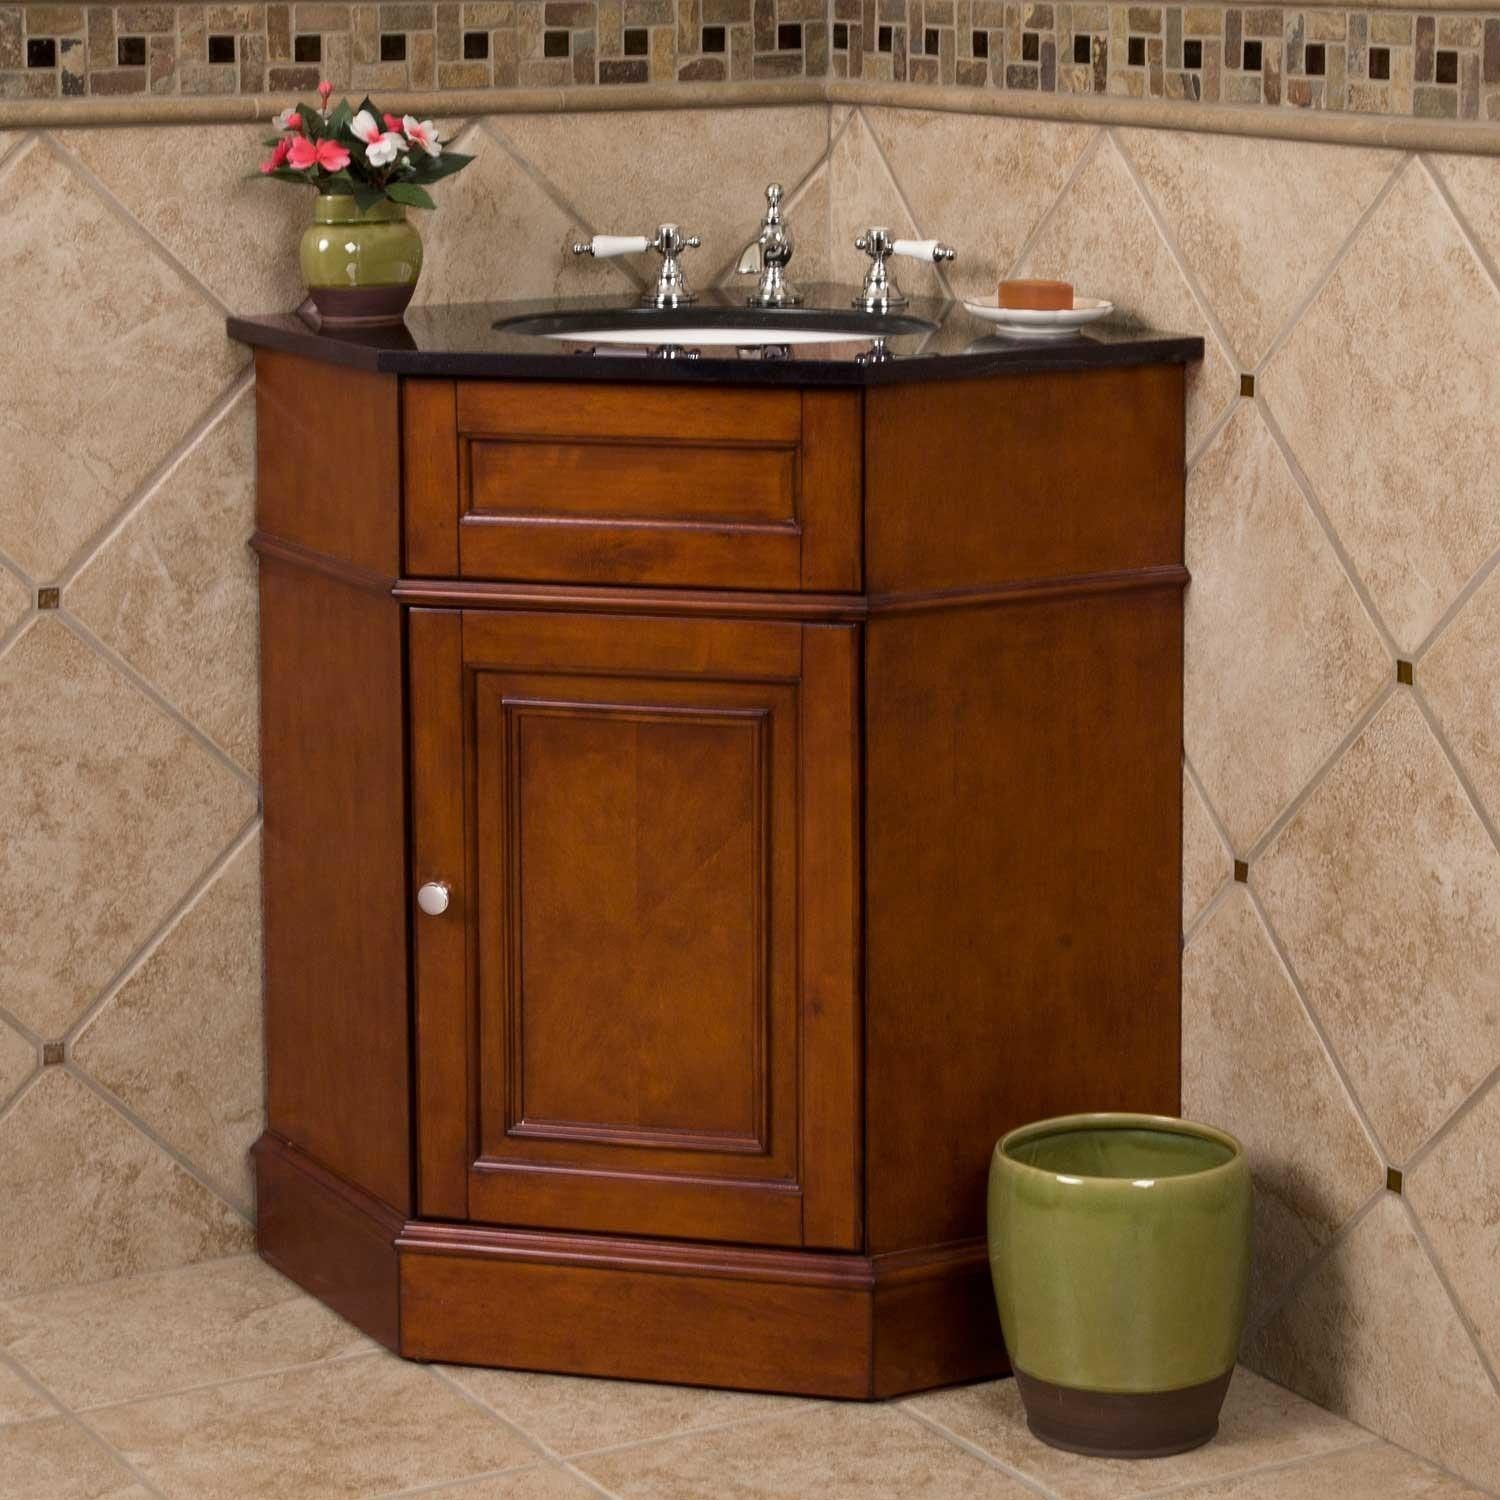 36 Bridgemill Corner Vanity For Undermount Sink Bathroom Vanities Bathroom Corner Bathroom Vanity Bathroom Vanity Style Small Bathroom Decor